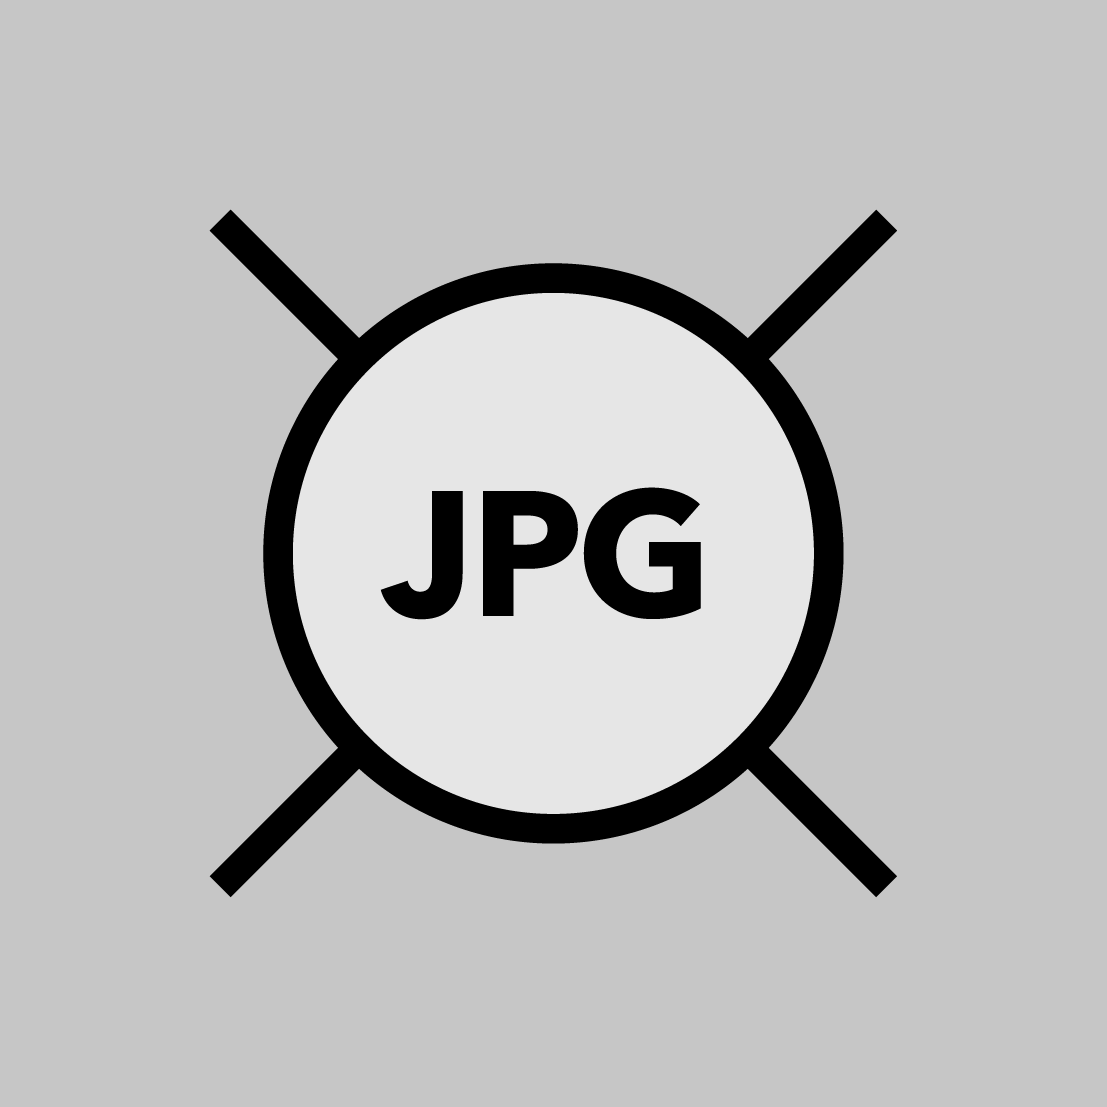 jpg-icon.png